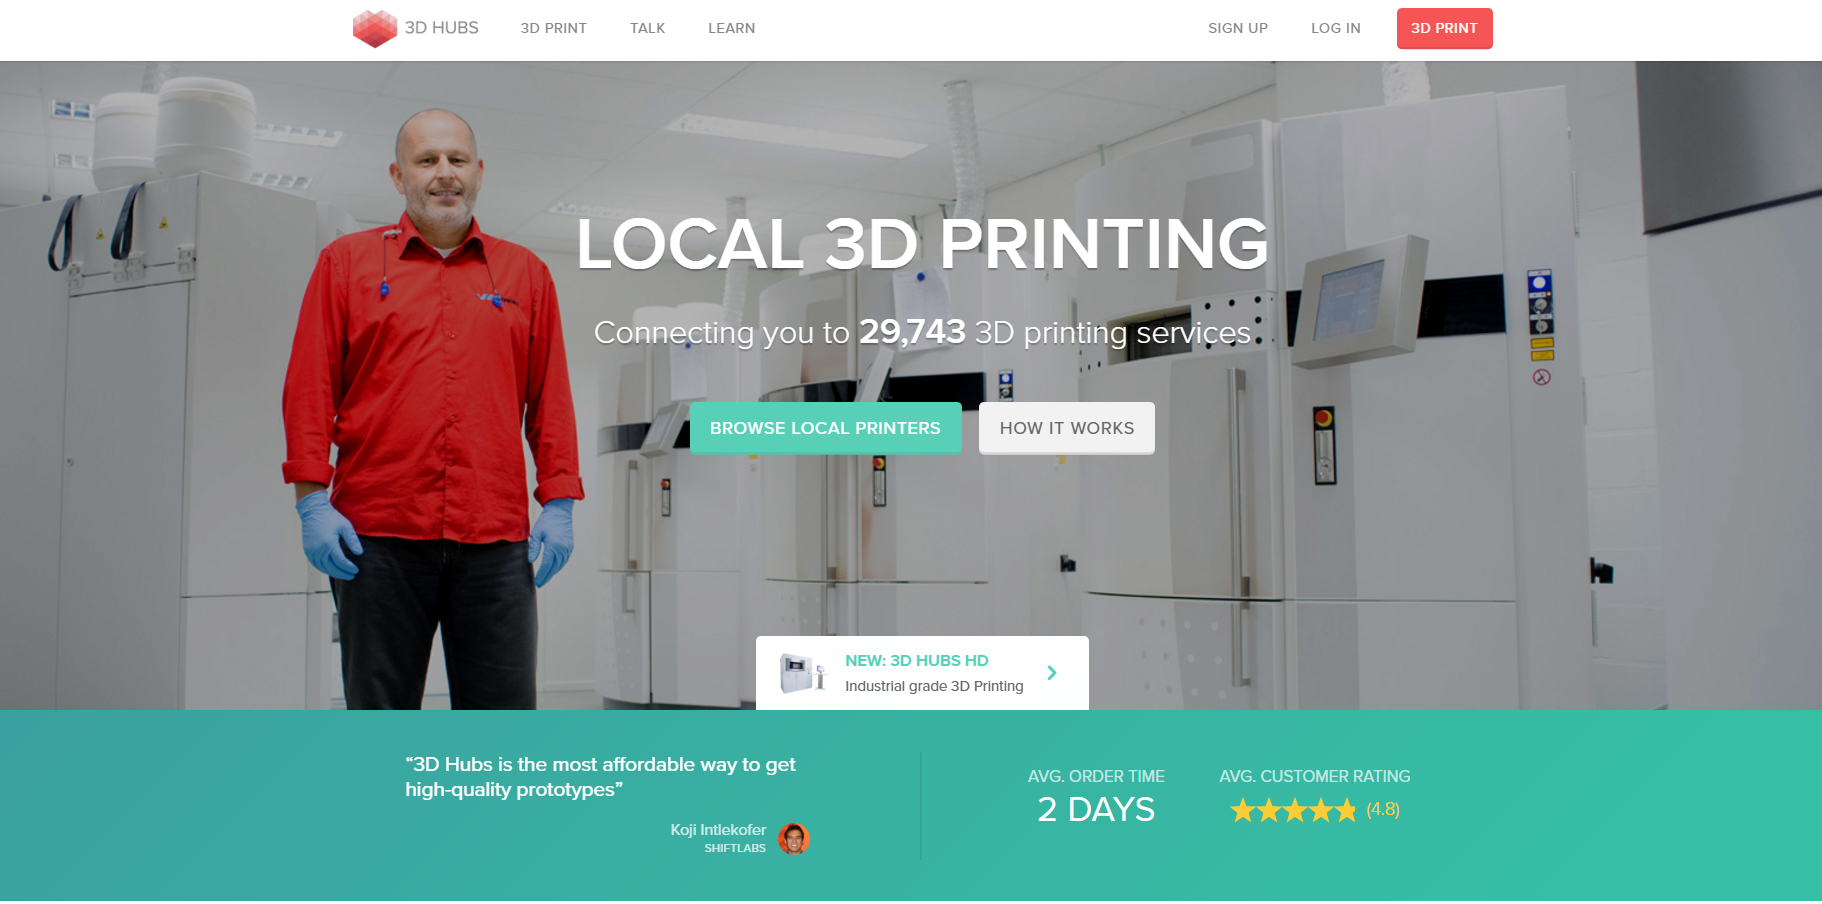 3Dhubs hosts all avaialble 3D printers across the Globe